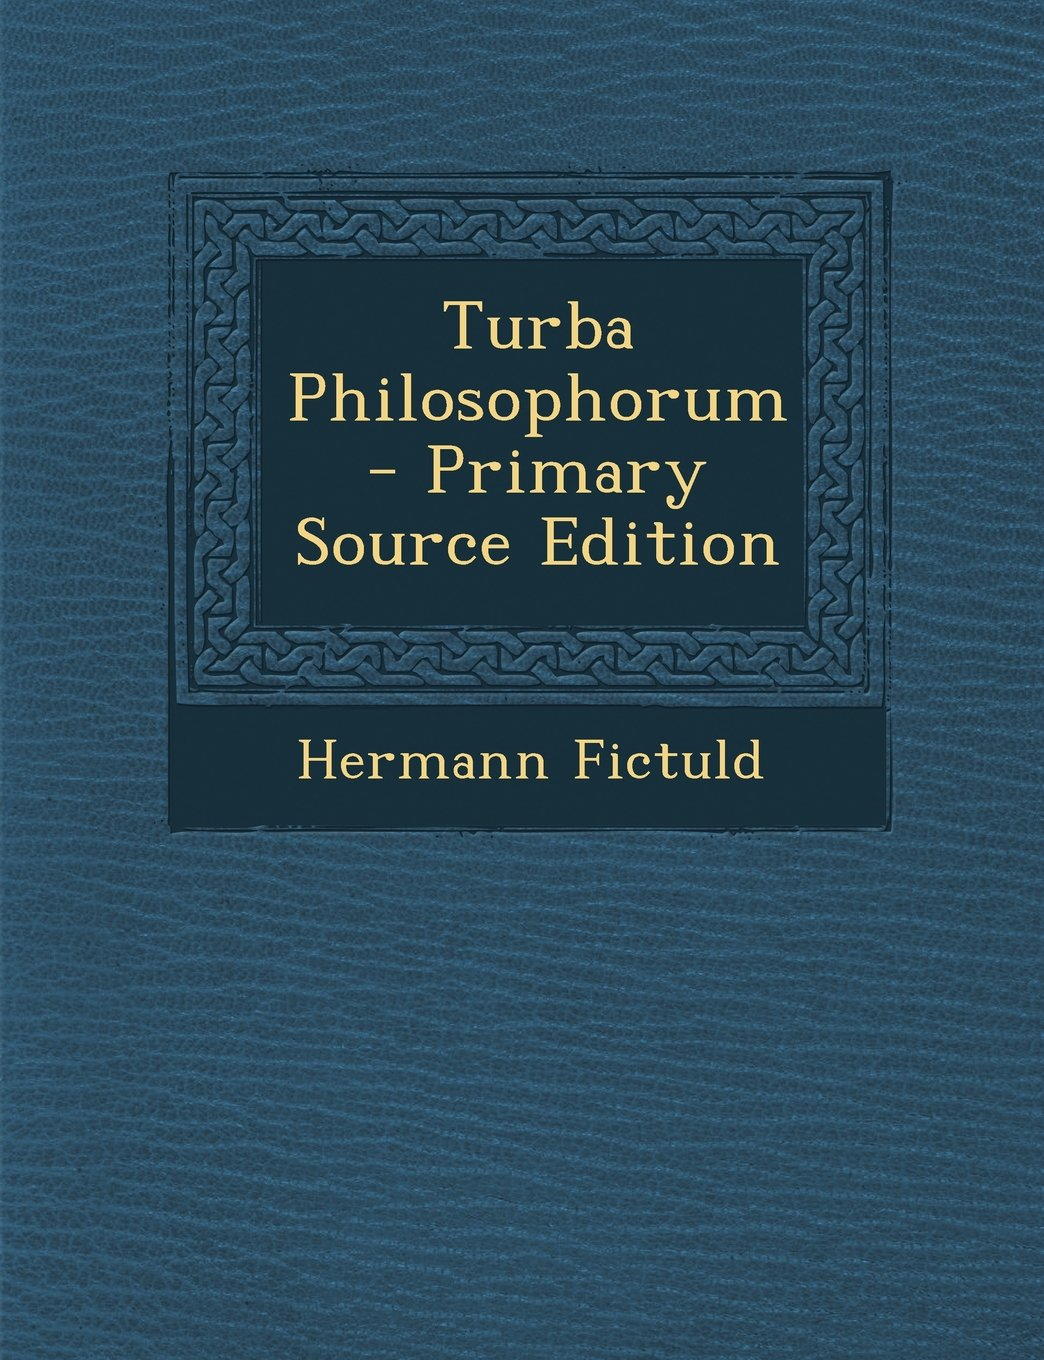 Turba Philosophorum - Primary Source Edition: Hermann Fictuld: 9781293382332: Amazon.com: Books